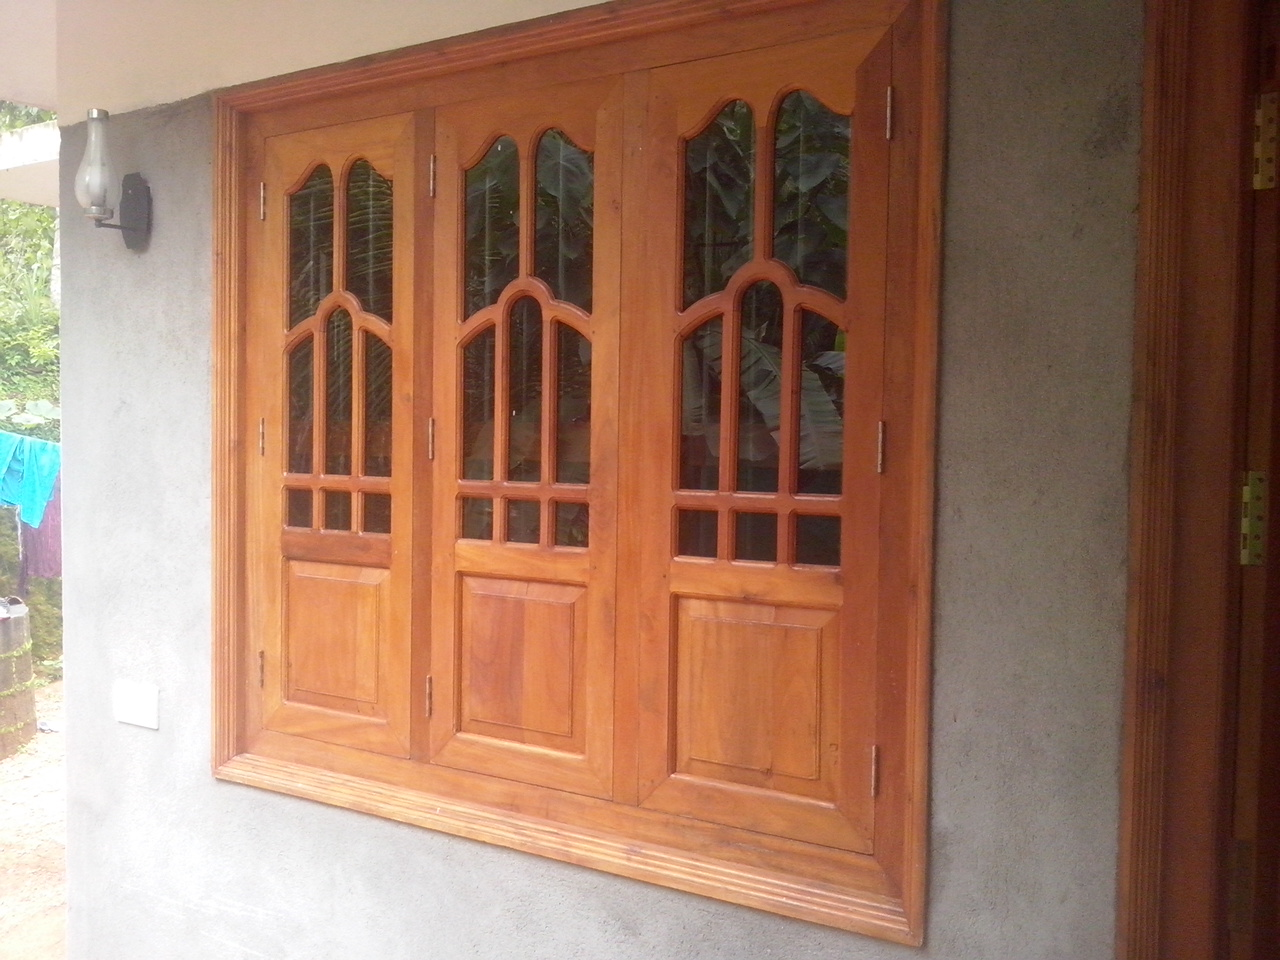 Bavas wood works kerala style wooden window door designs for Simple window designs for homes